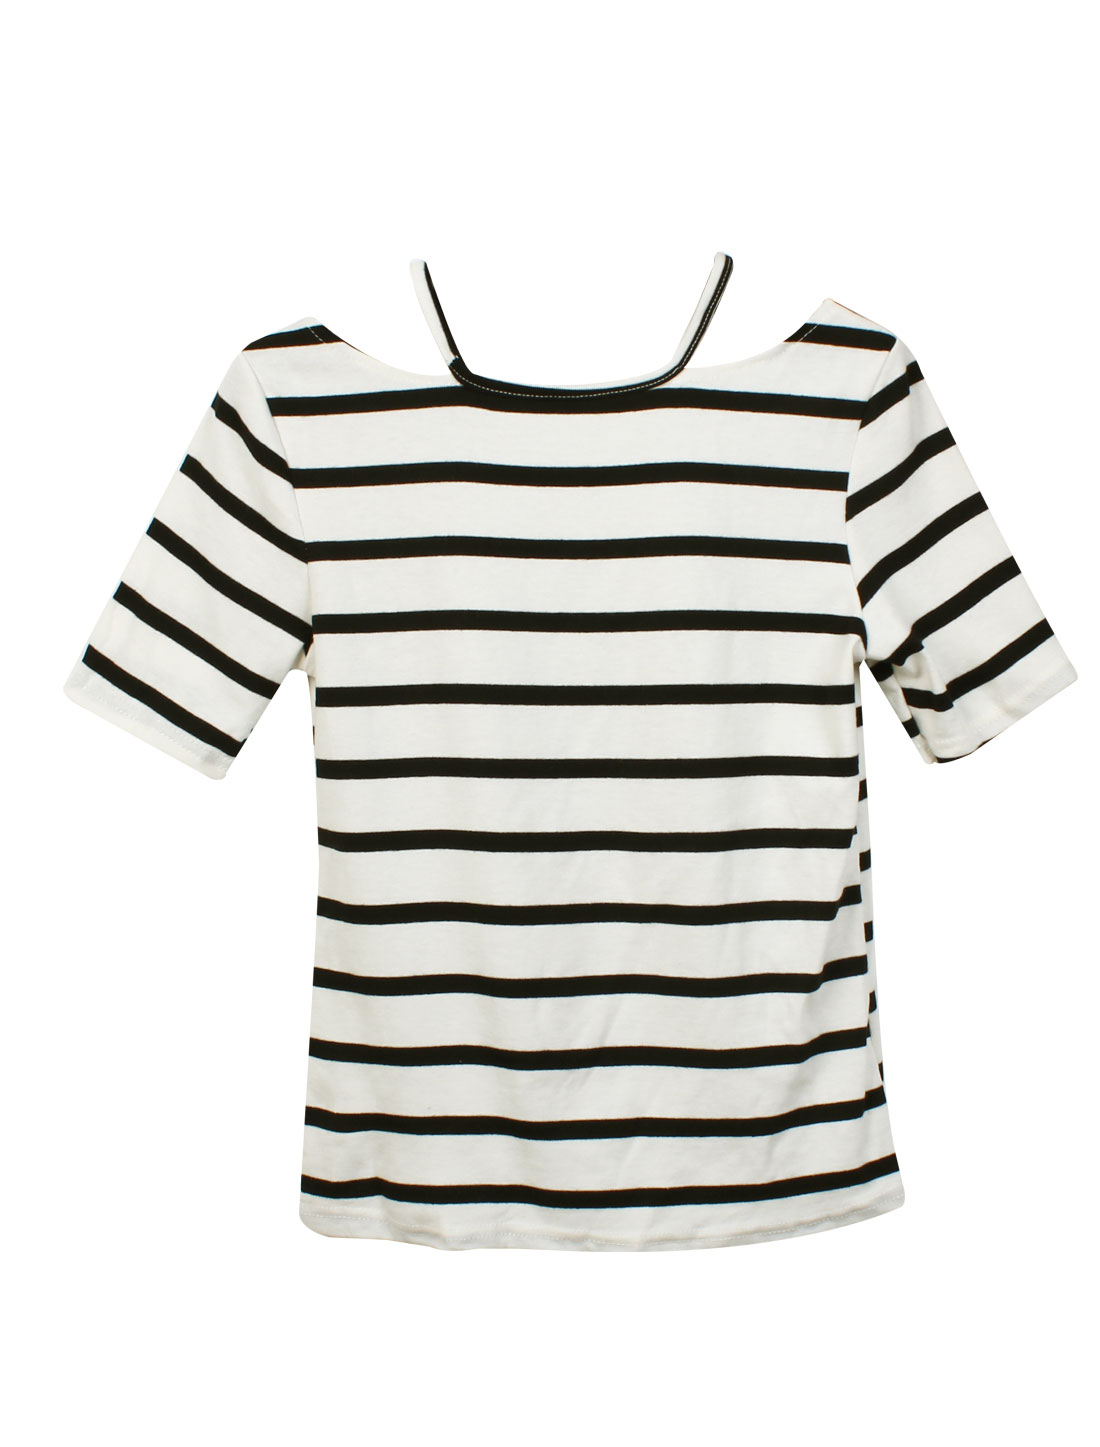 Women Round Neck Cut Out Style Short Sleeve Stripes Basic Tee White XS